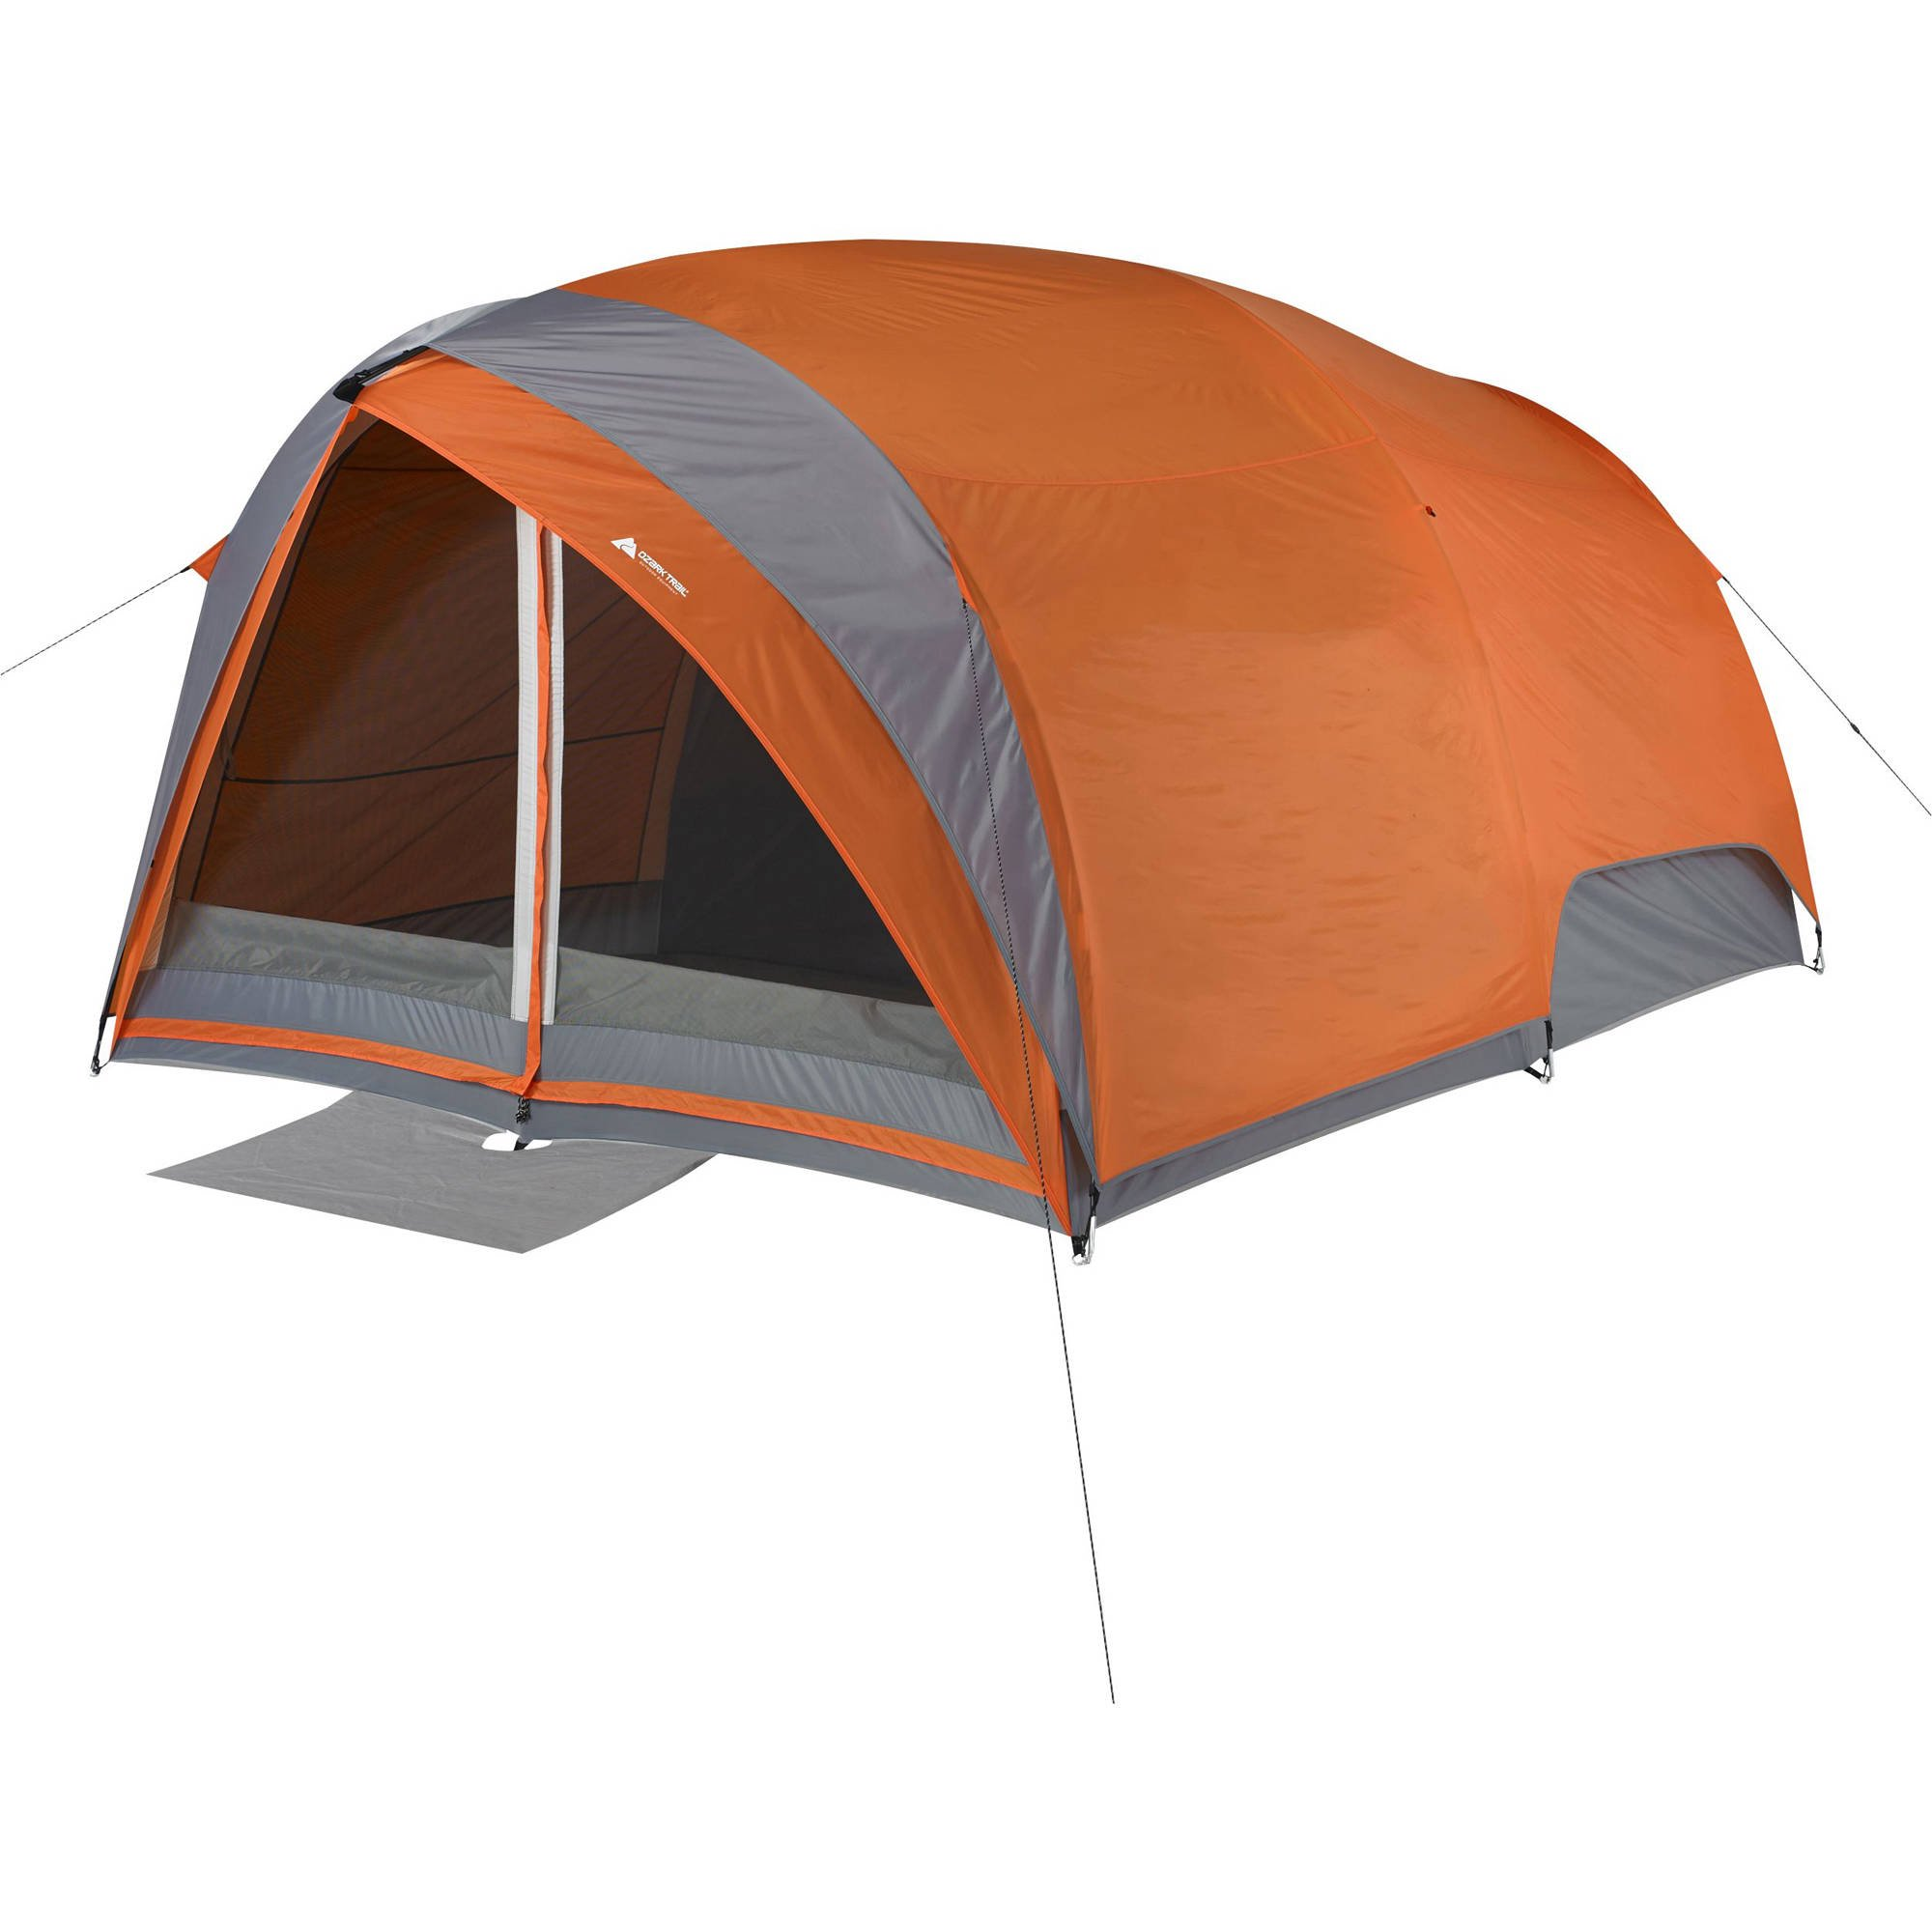 Ozark Trail 8-Person Dome Tunnel Tent with Maximum Weather Protection  sc 1 st  Walmart & Ozark Trail 8-Person Dome Tunnel Tent with Maximum Weather ...